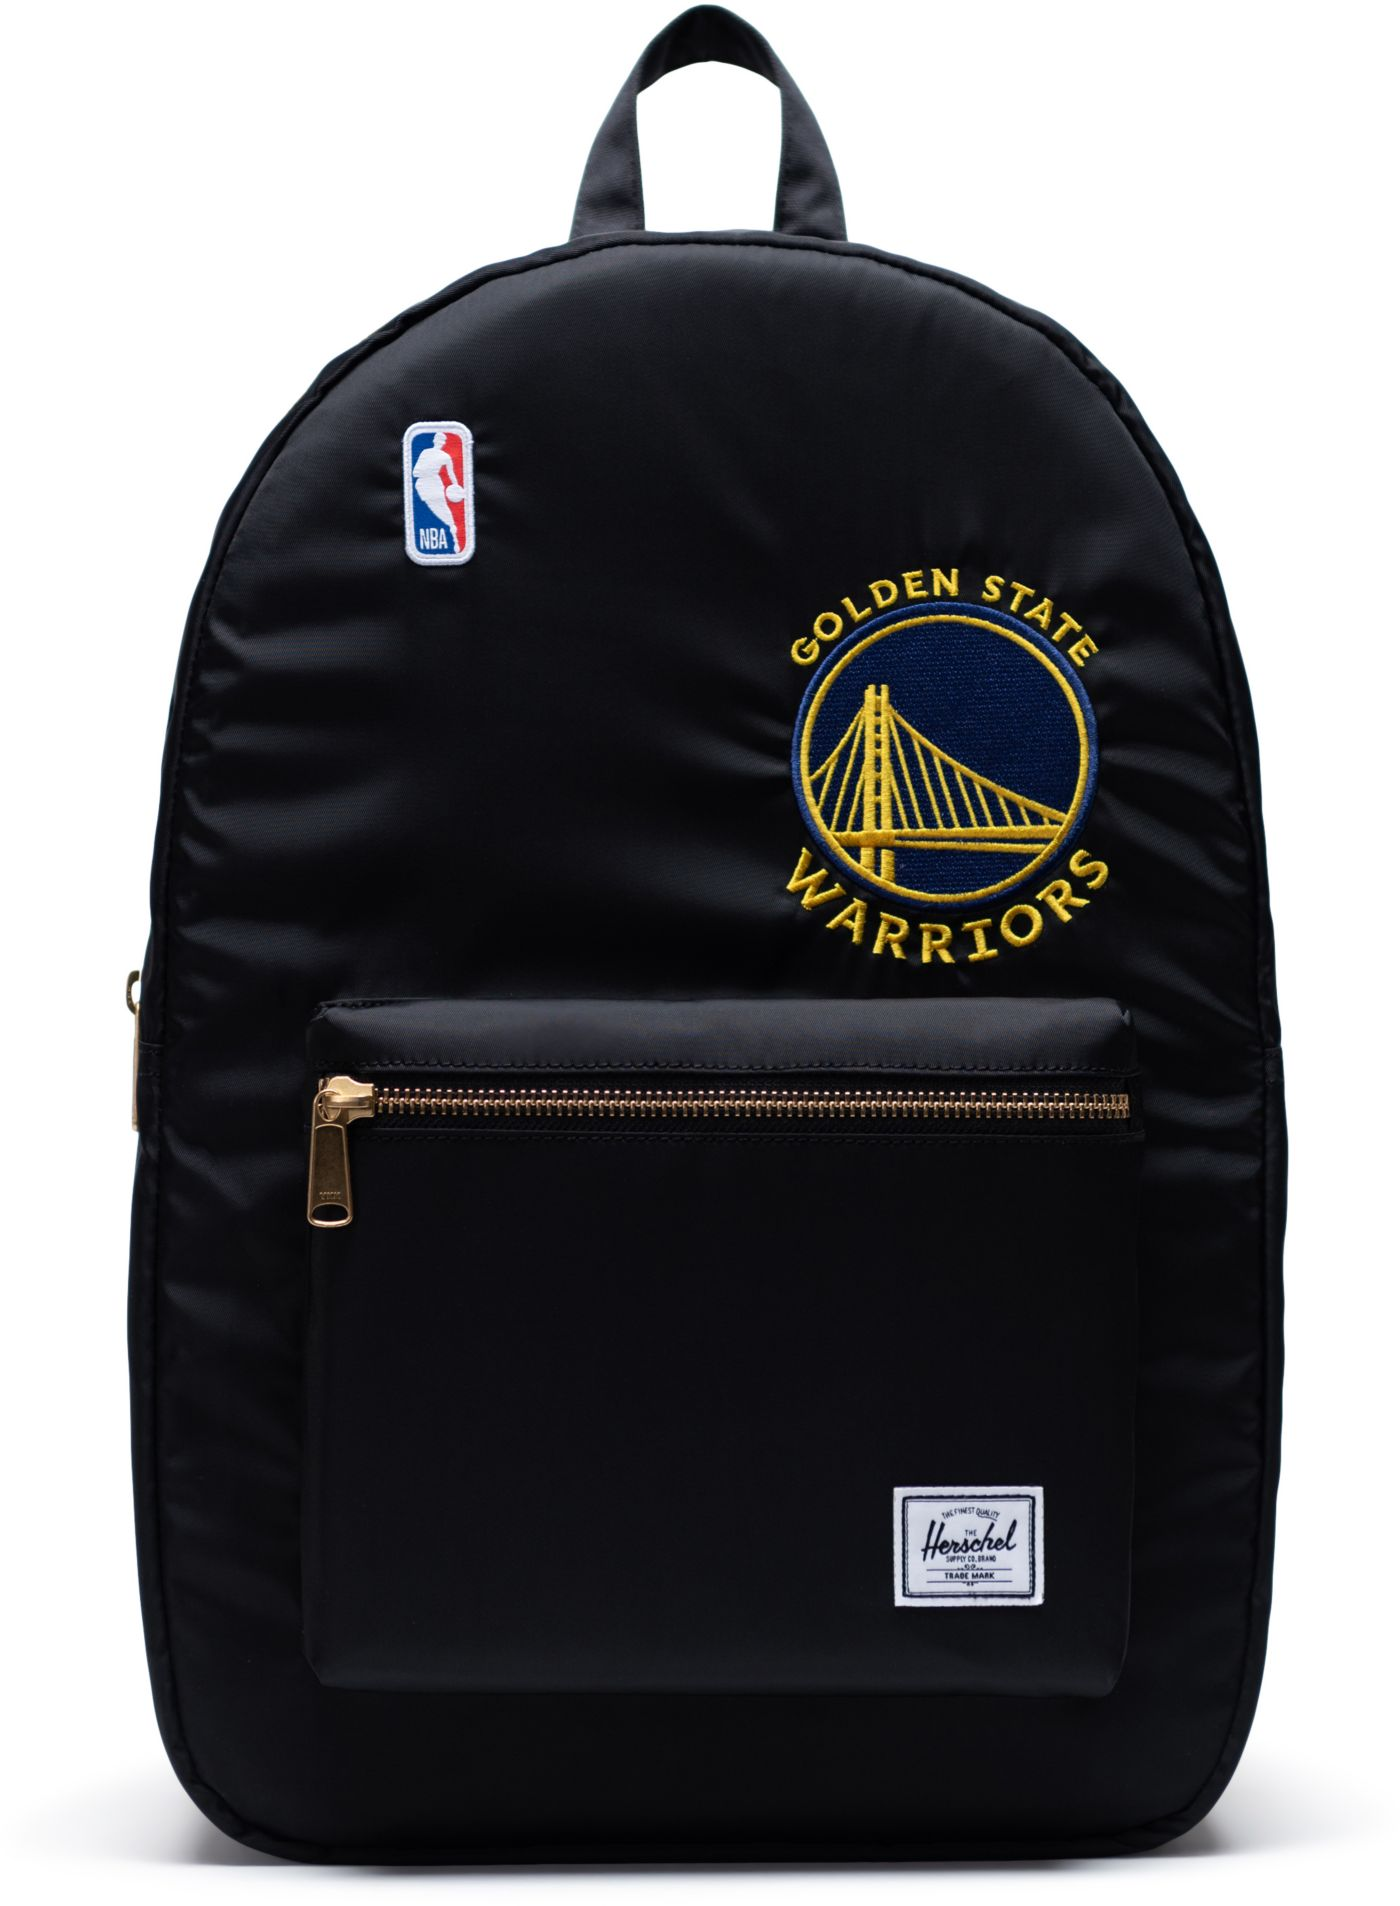 Herschel Golden State Warriors Black Settlement Backpack